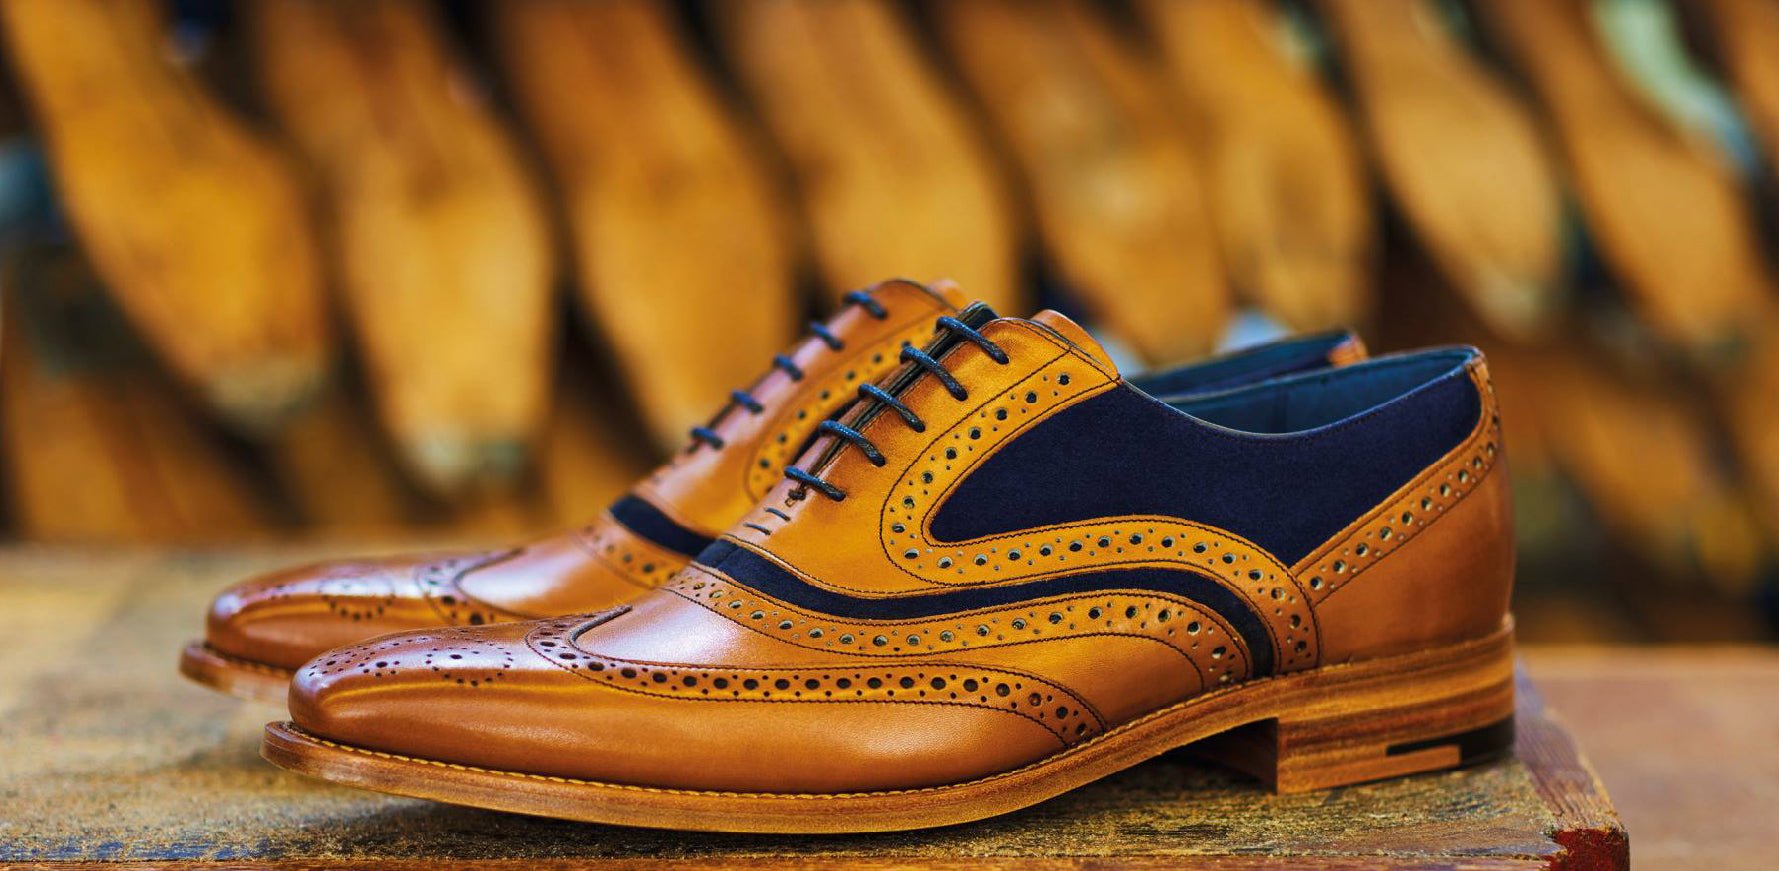 McClean - Men's Handmade Leather Oxford Brogue By Barker